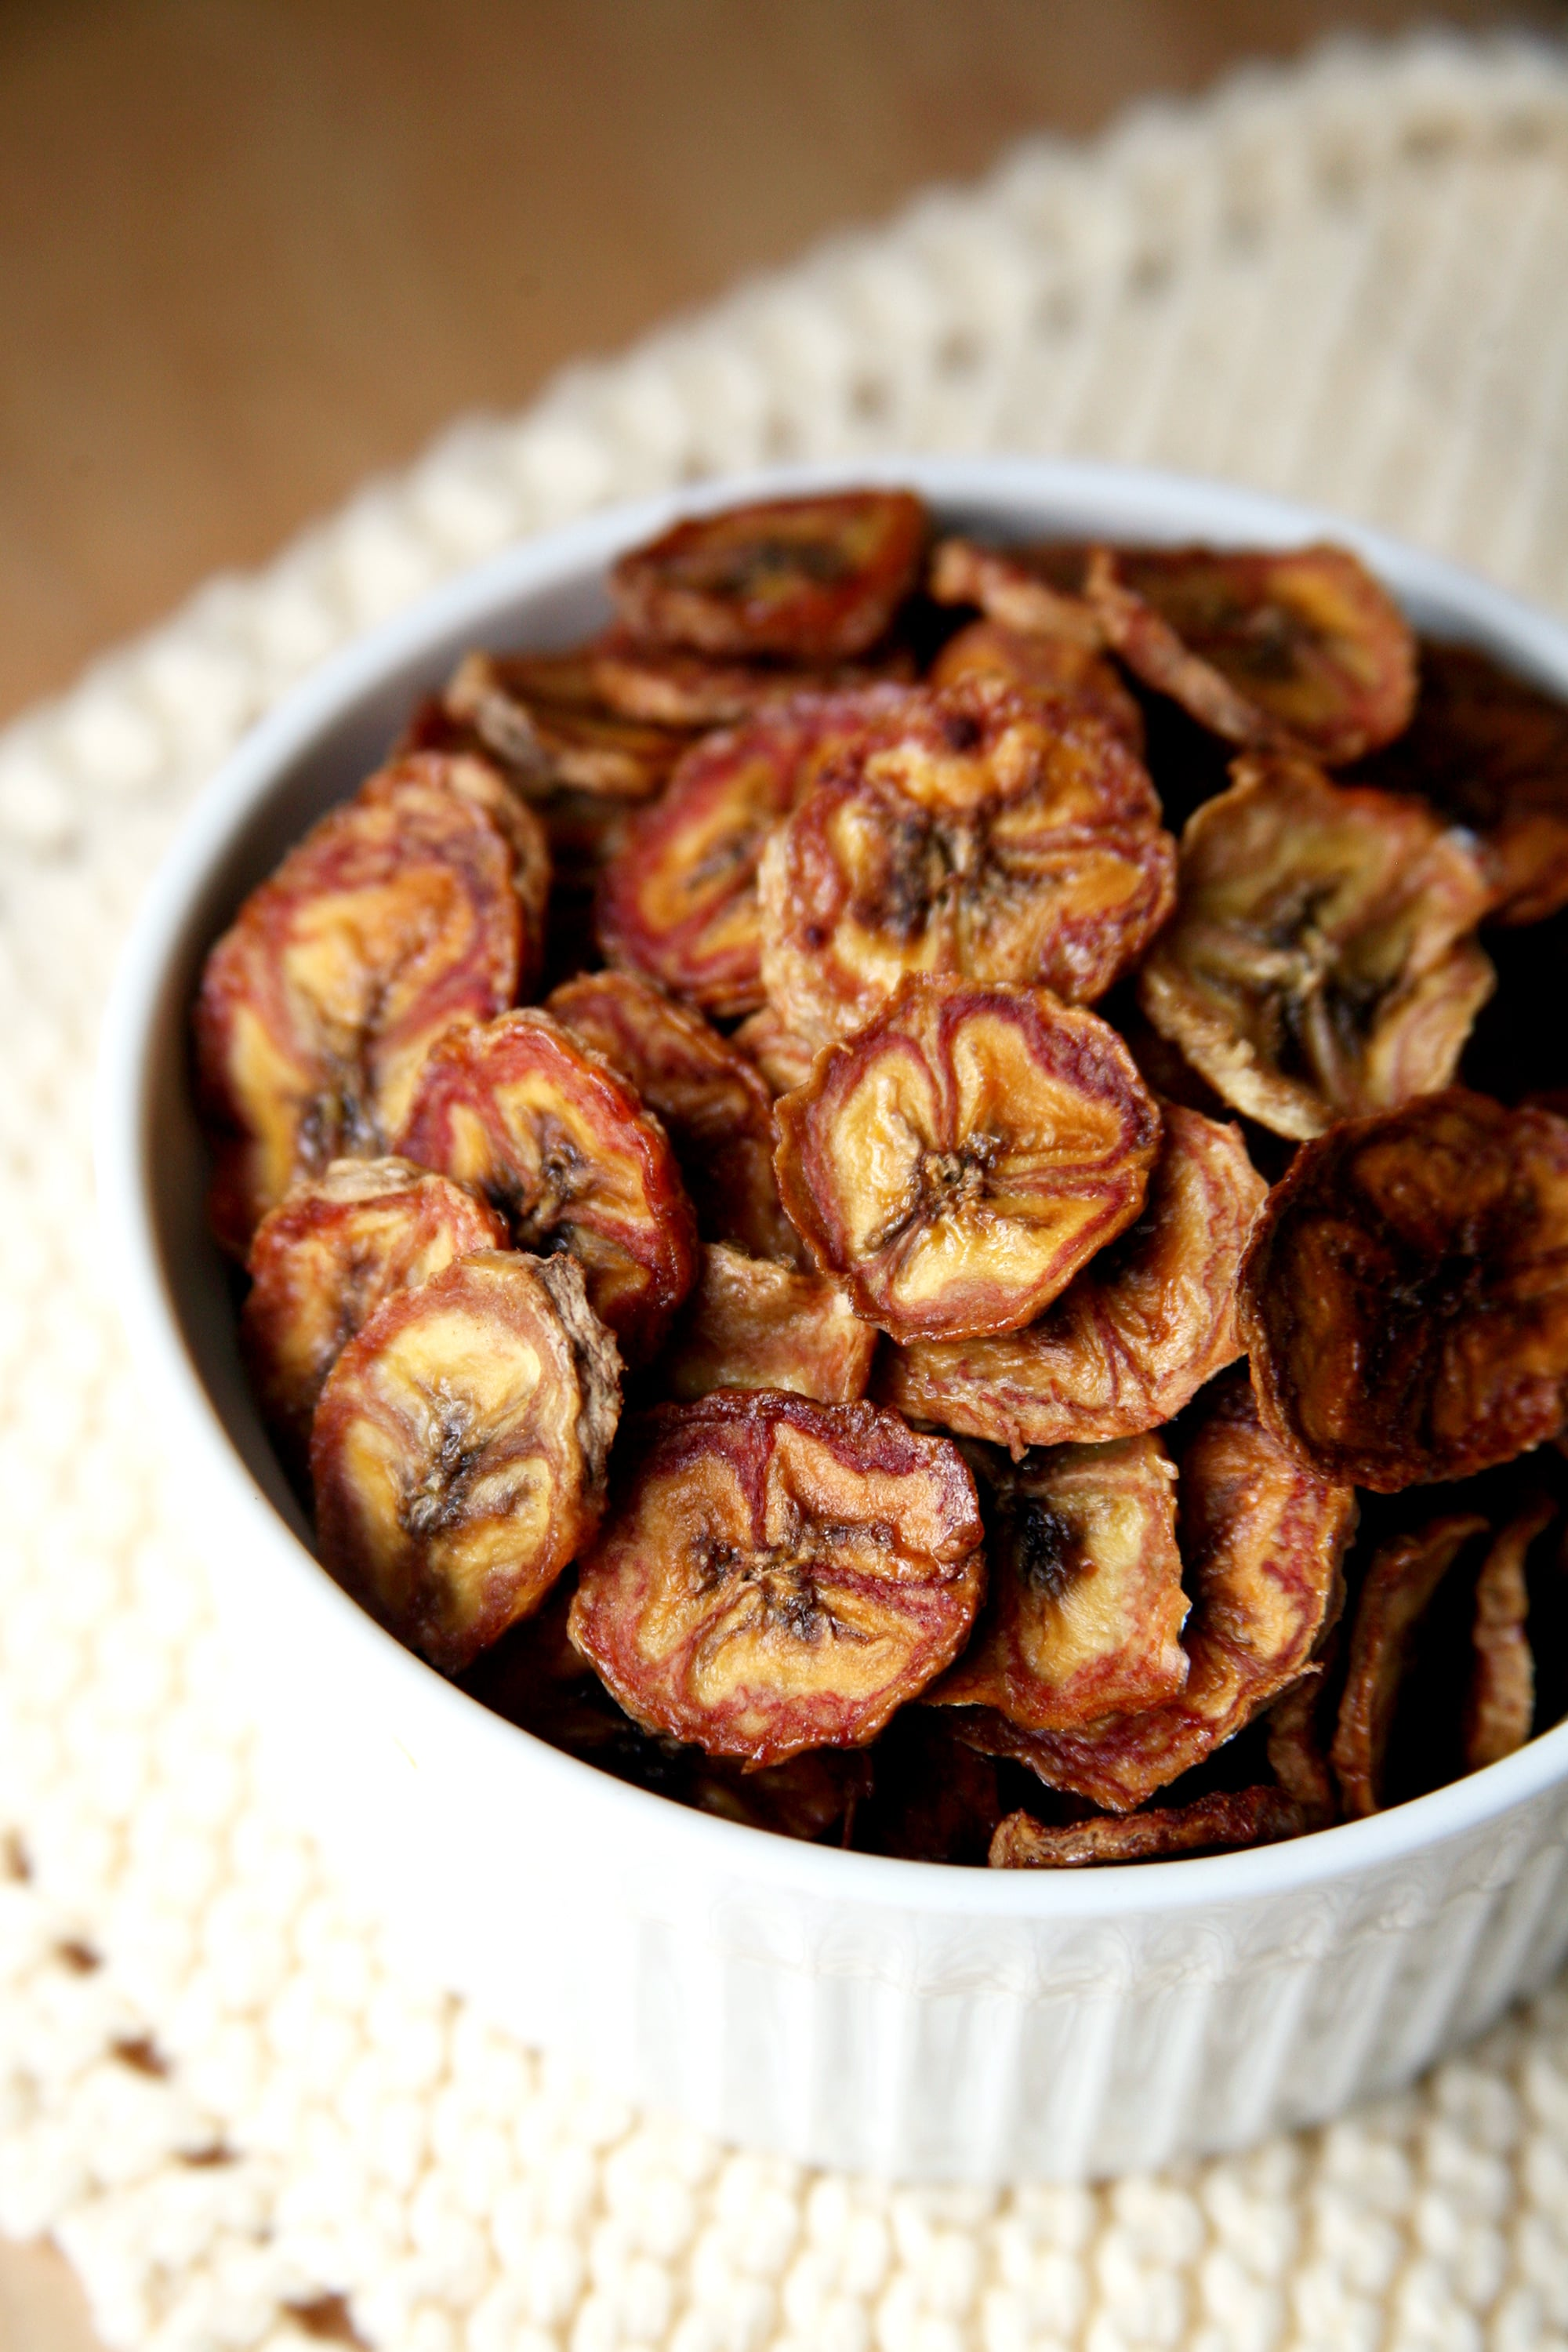 Baked Cinnamon Banana Chips Save on Dough and Added Sugars